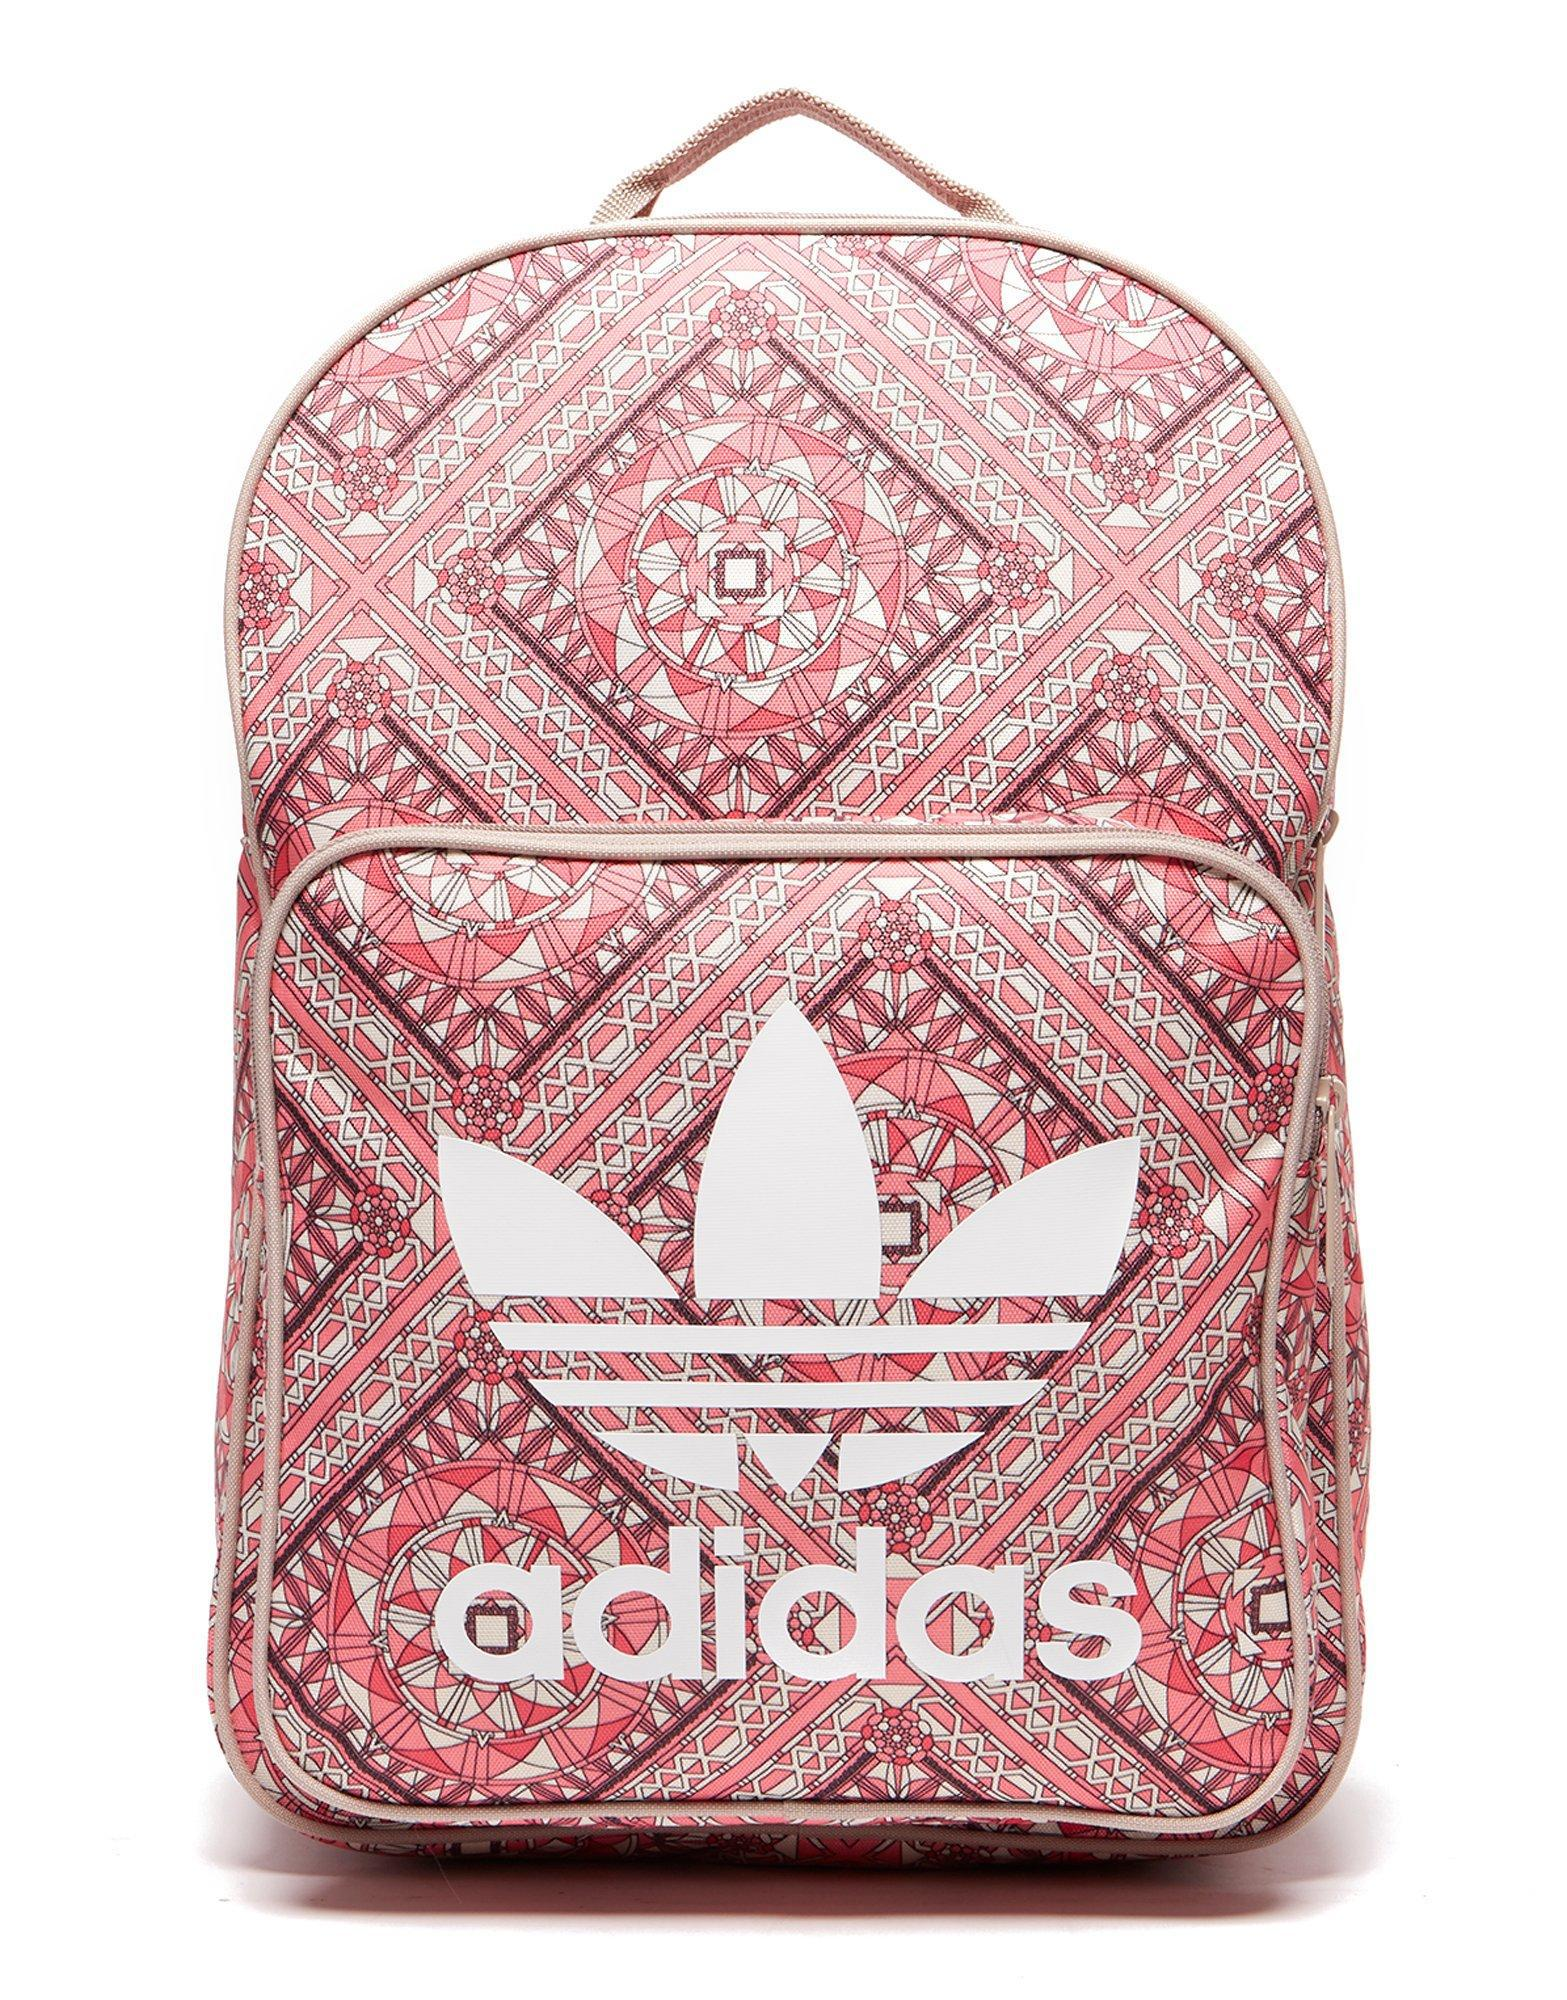 5107b80777a49 adidas Originals Classic Print Backpack in Pink - Lyst